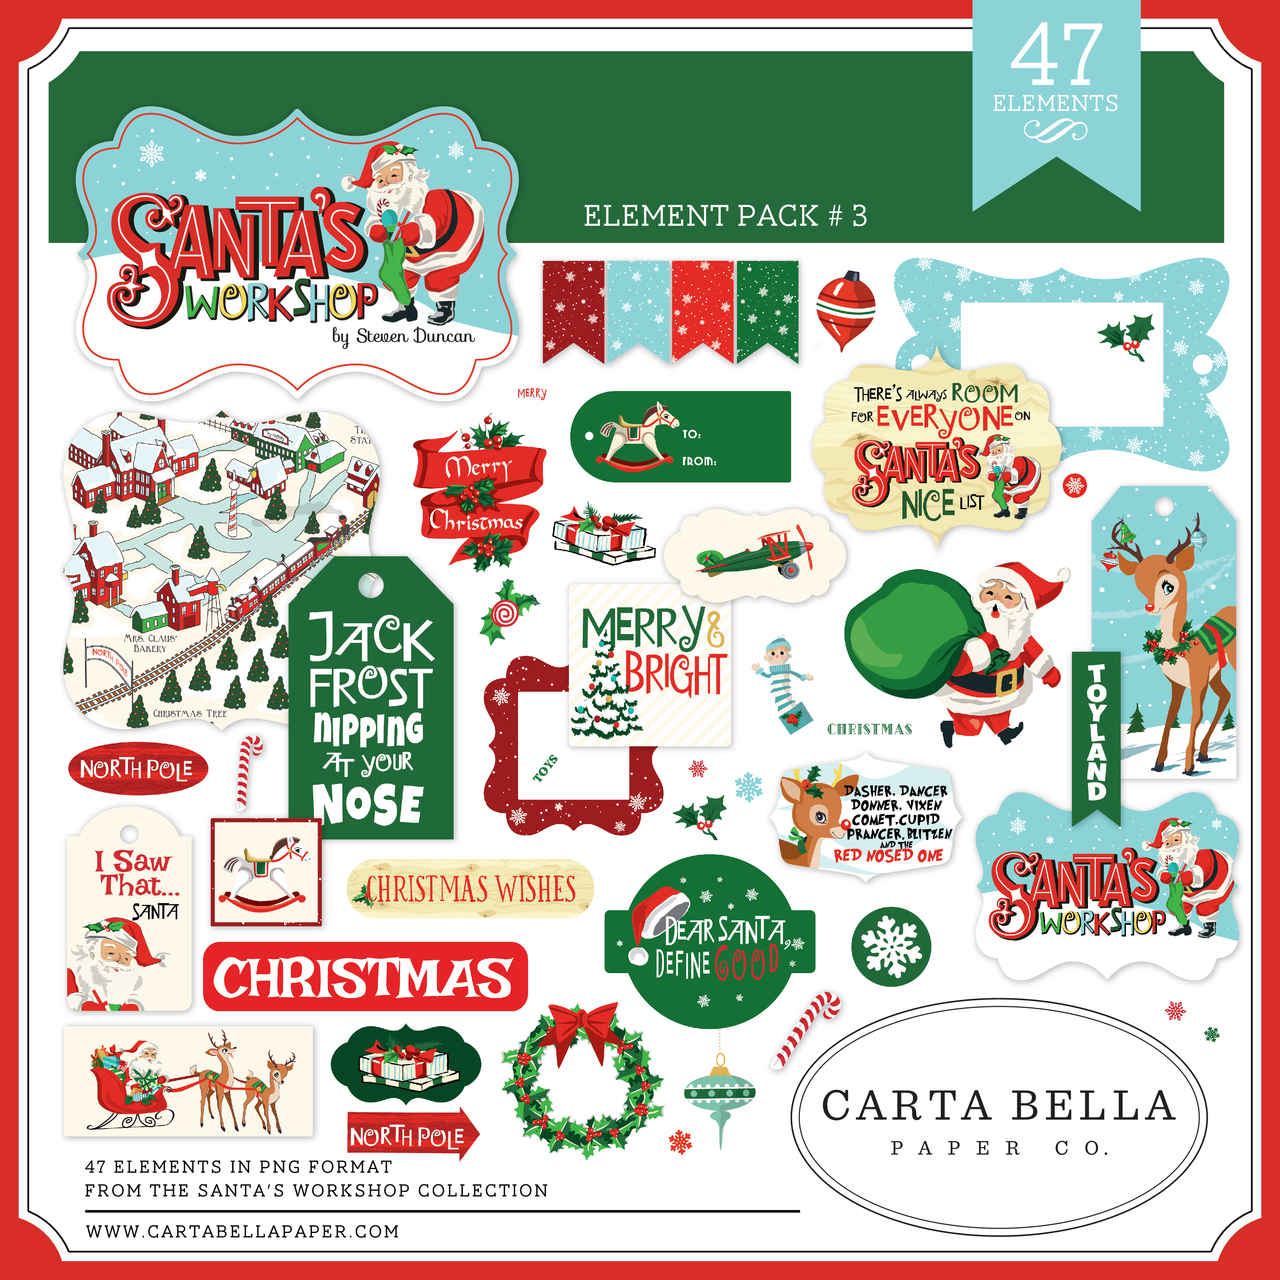 Santa's Workshop Element Pack #3